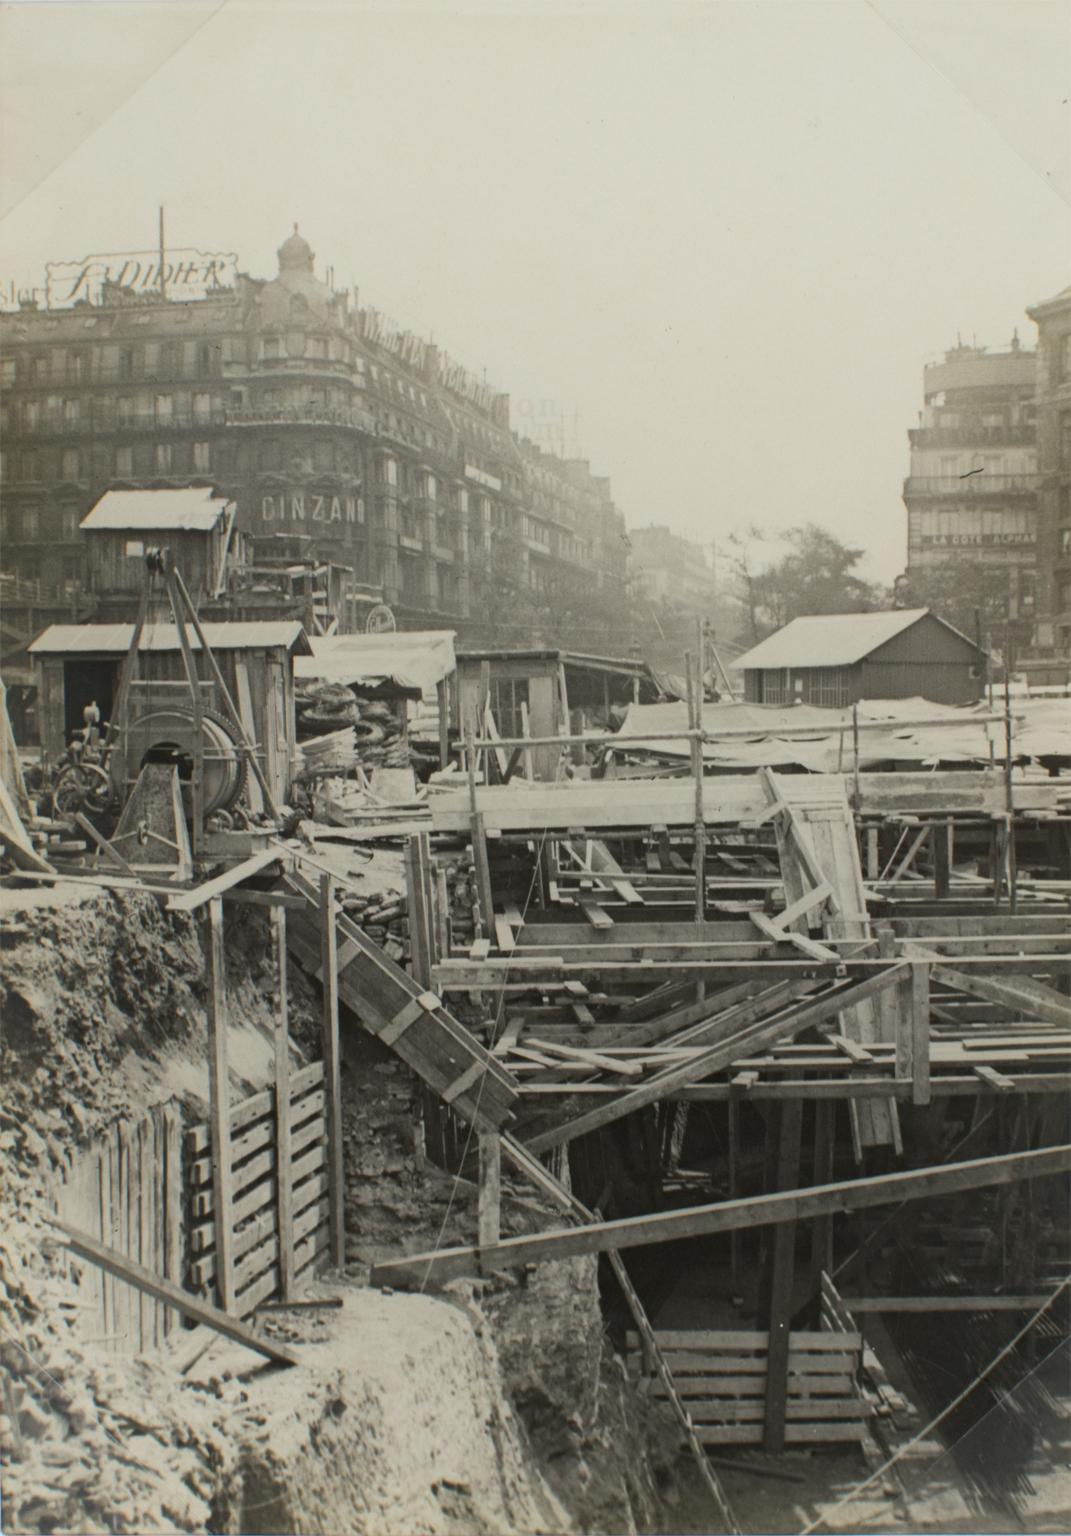 Construction Site in Paris 1926 - Silver Gelatin Black and White Photograph